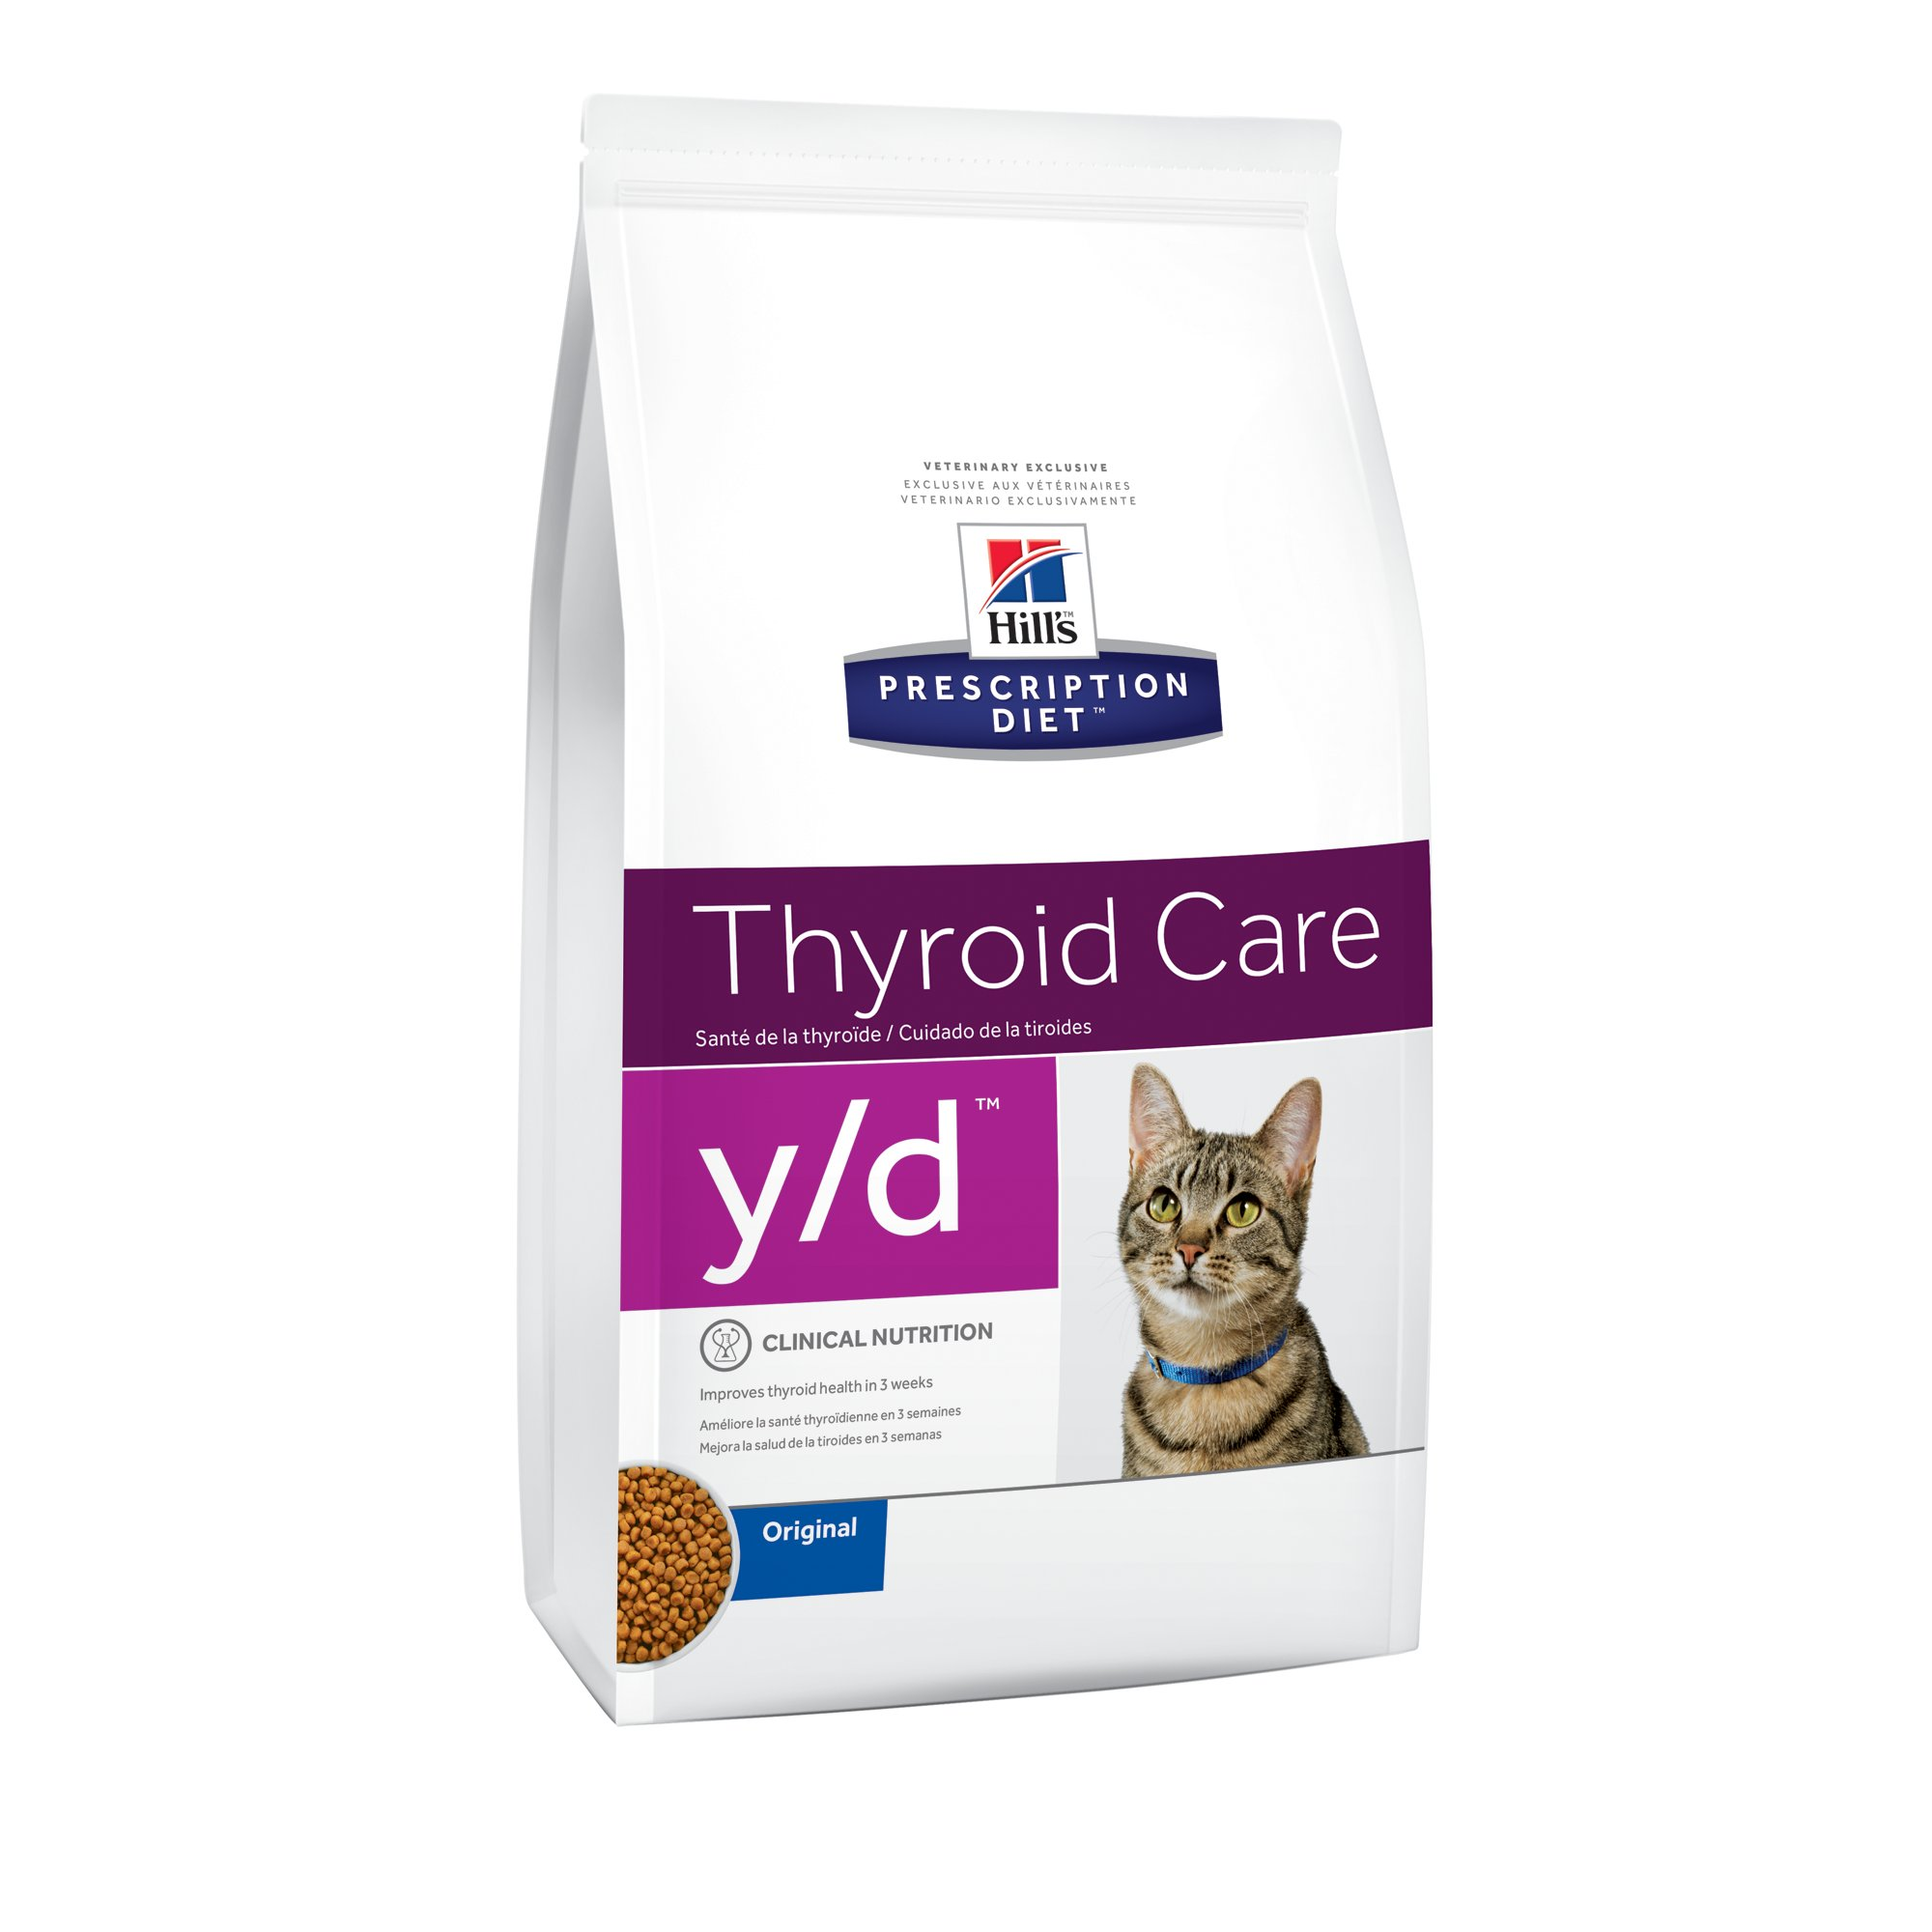 Hills Prescription Diet Thyroid Care Original Cat Food